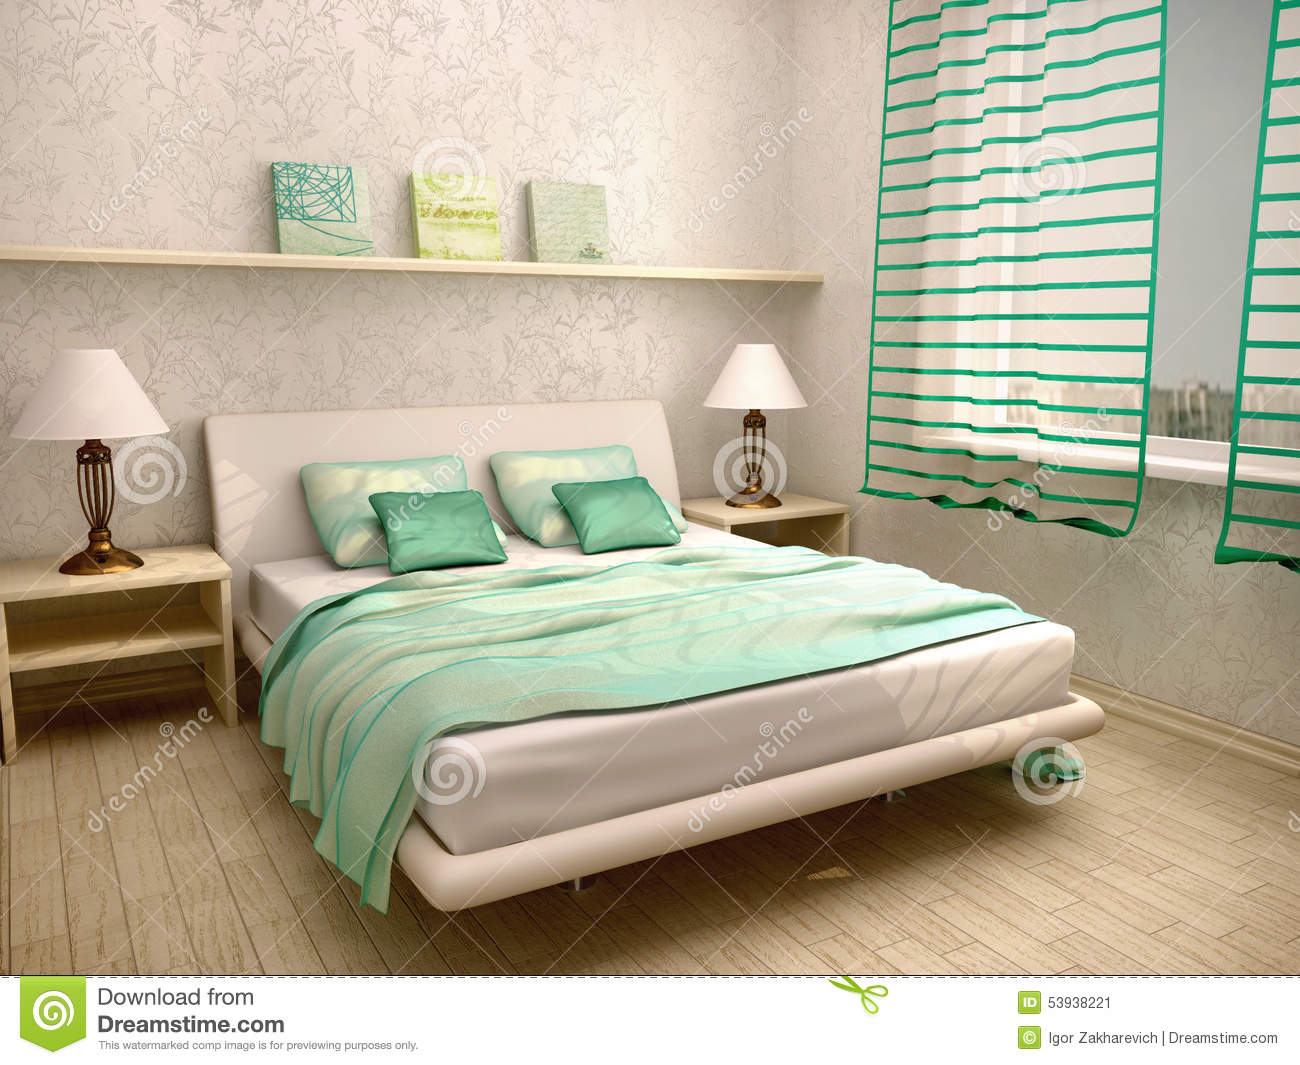 illustration of bedroom interior in a light turquoise 12110 | illustration bedroom interior light turquoise d 53938221